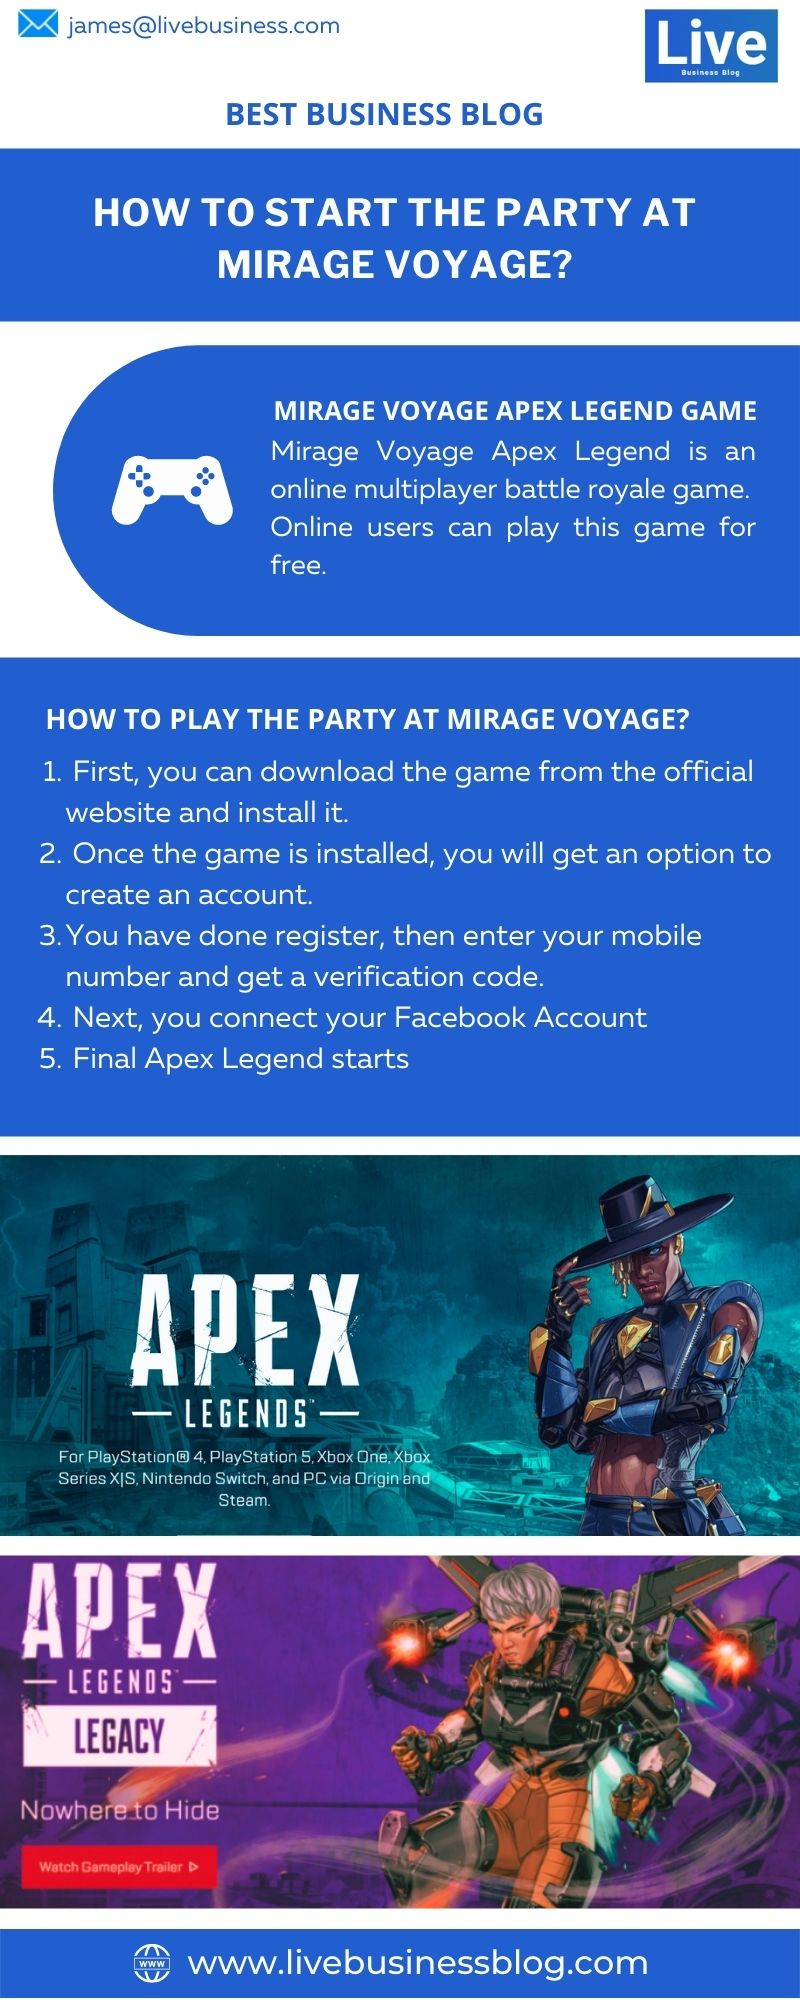 how to start the party at mirage voyage